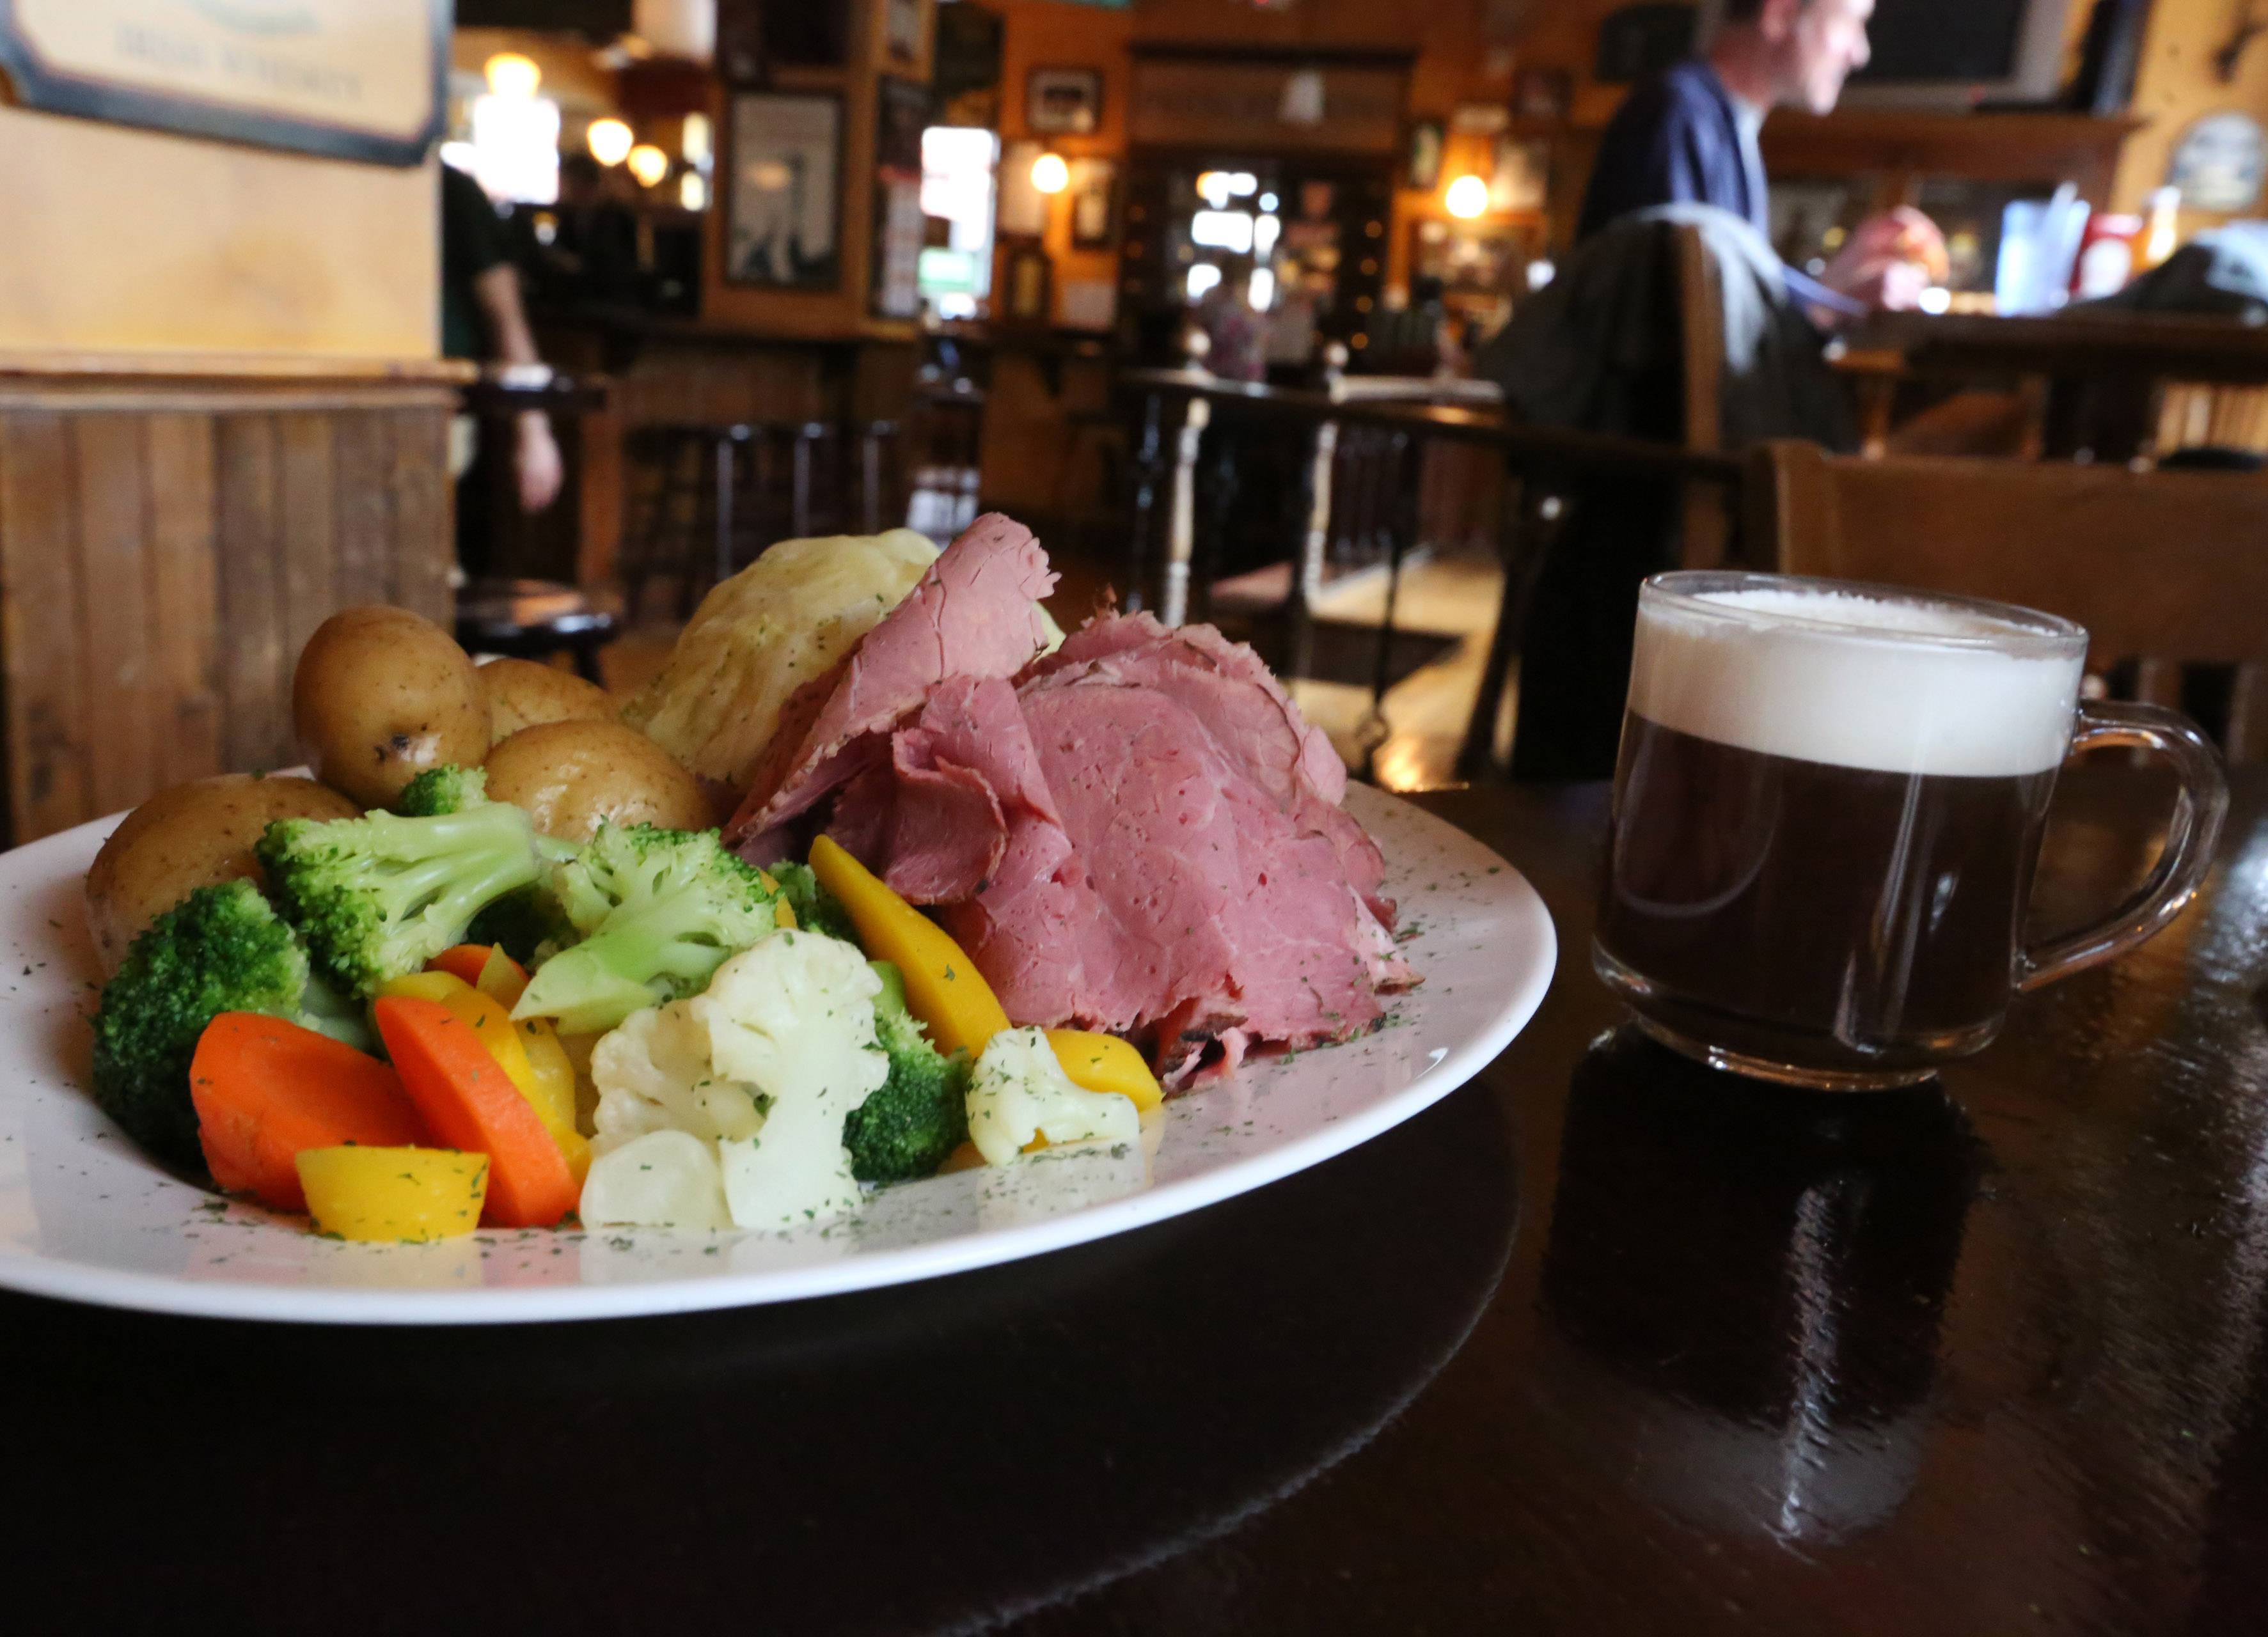 Corned beef, cabbage and potatoes with an Irish coffee are St. Patrick's Day specialties at Peggy Kinnane's Irish Restaurant and Pub in Arlington Heights.